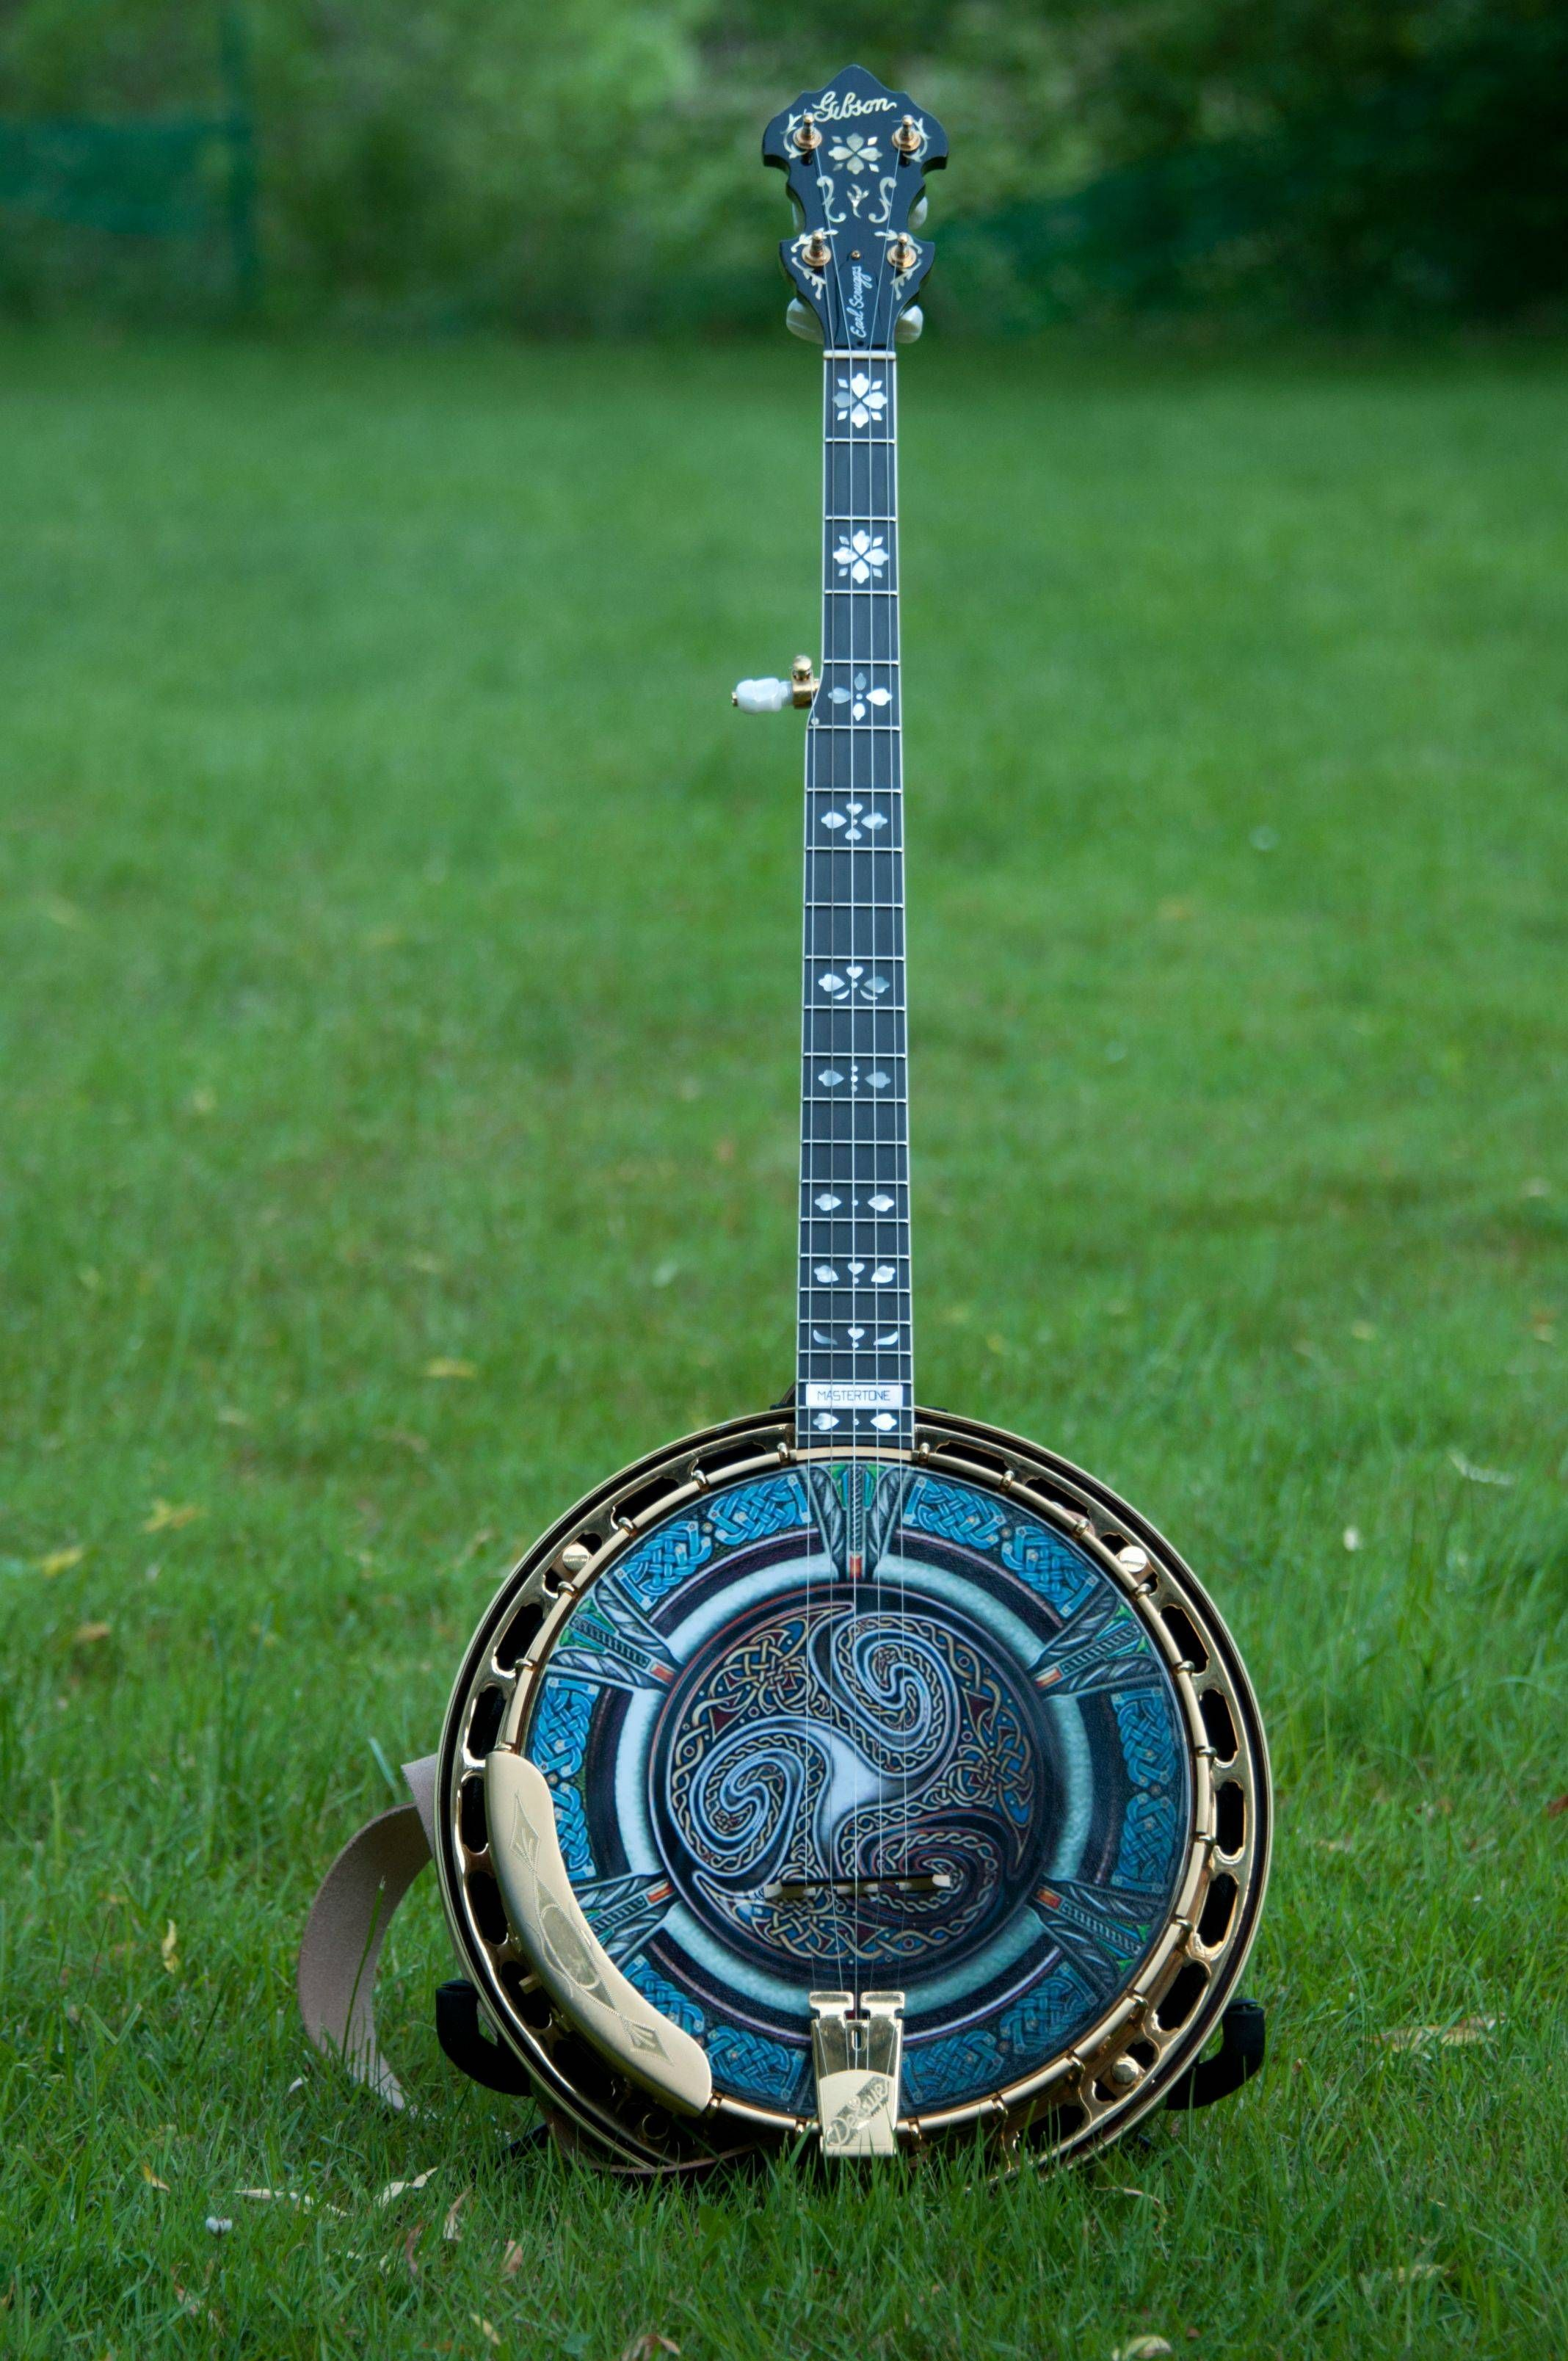 '93 Gibson Earl Scruggs Golden Deluxe 5-String Banjo with a custom made head #Heath